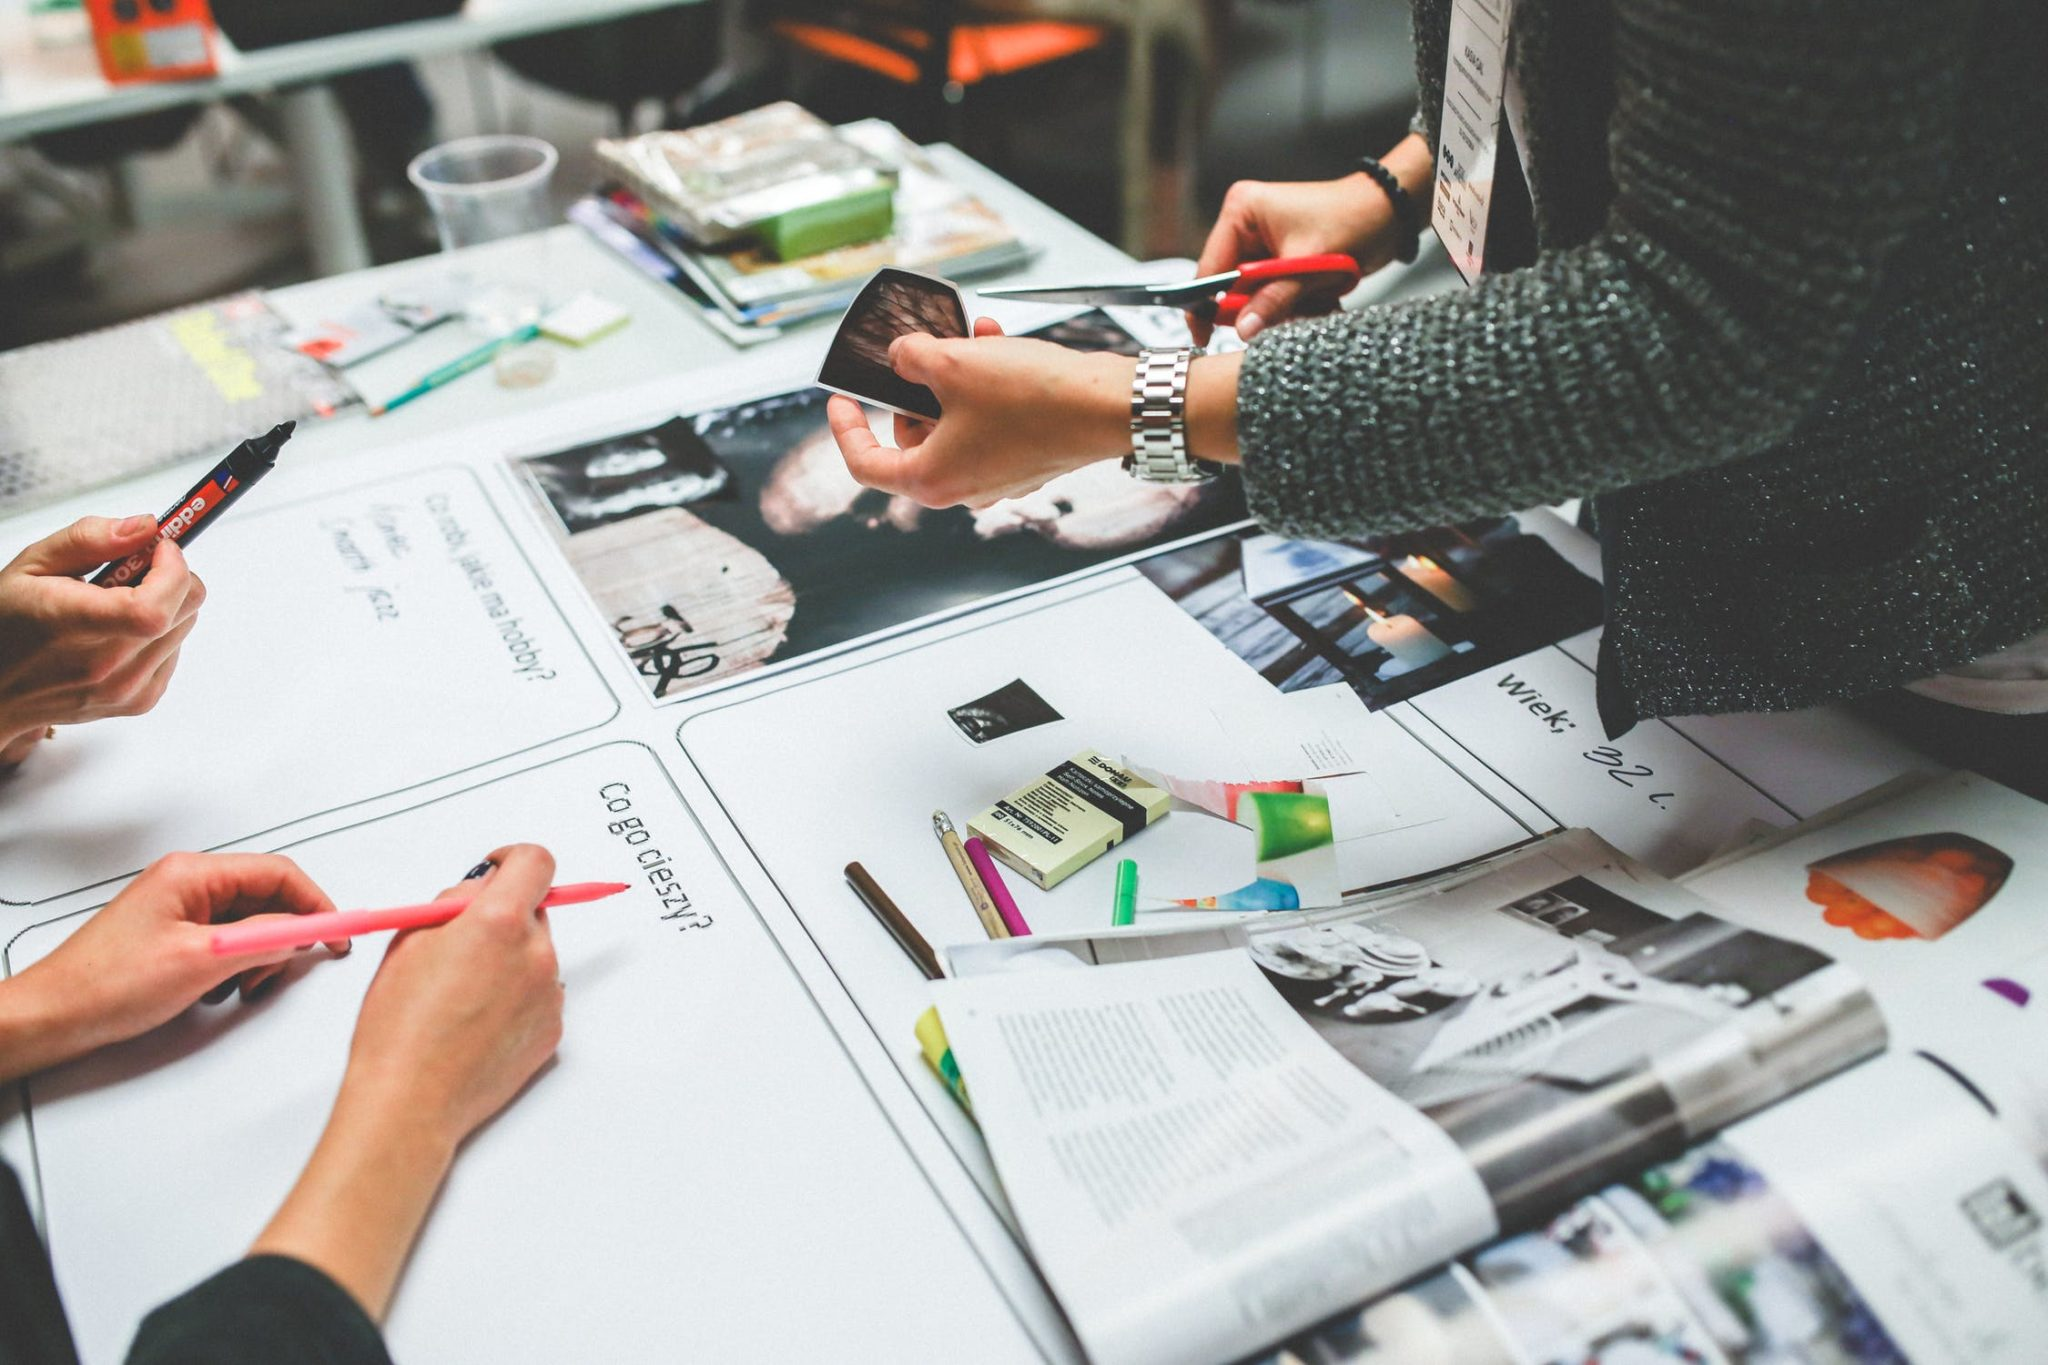 How Do Top User Experience Companies Recruit Designers In The Future?